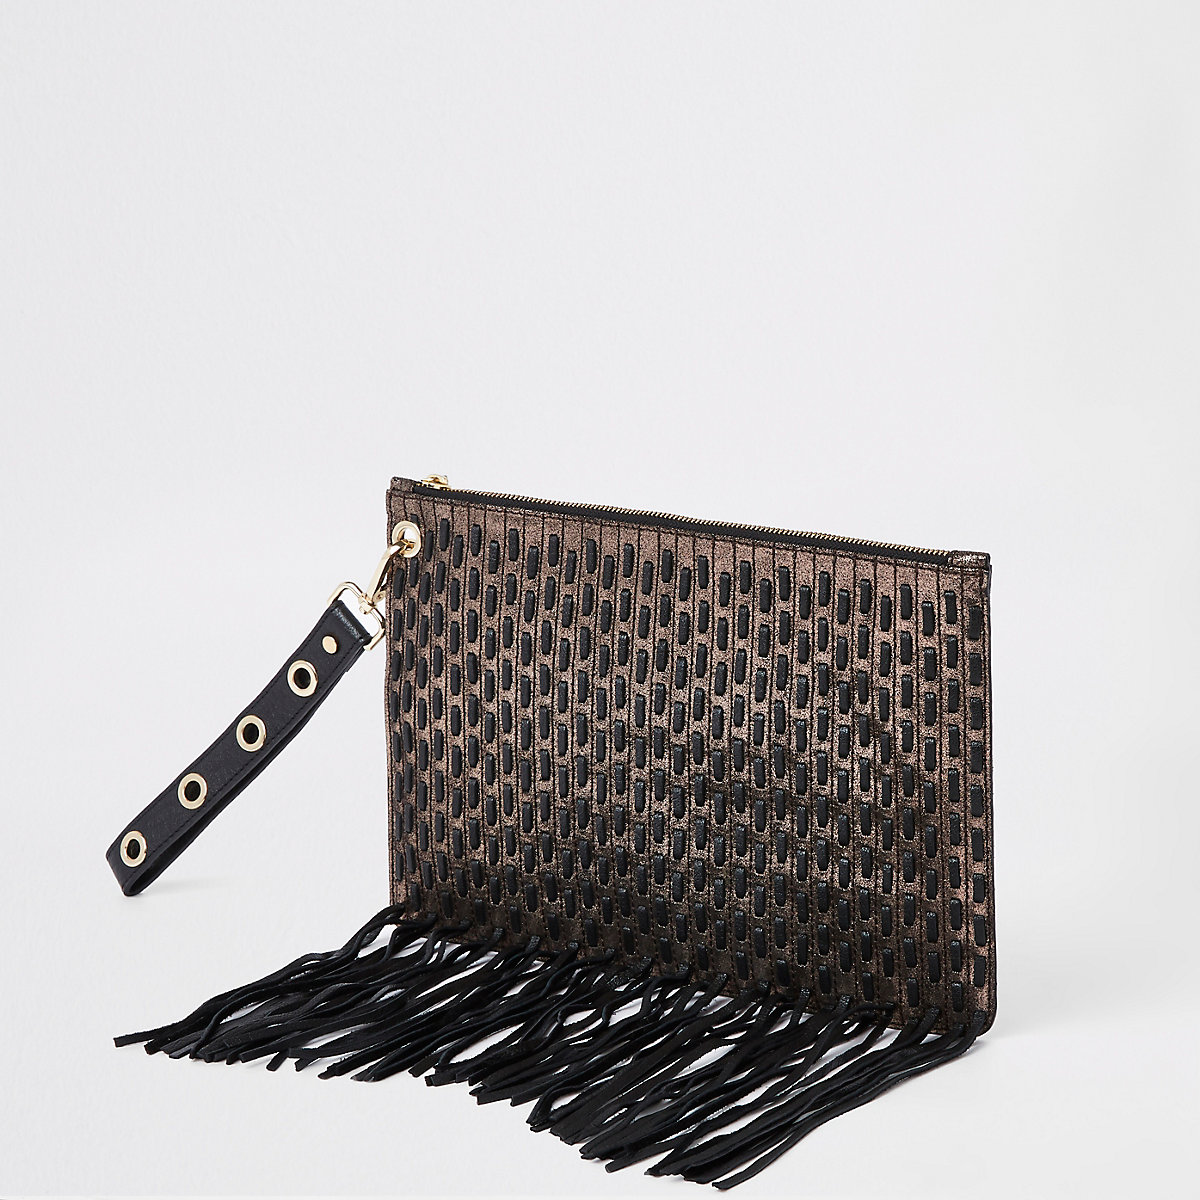 Gold metallic leather pouch clutch bag